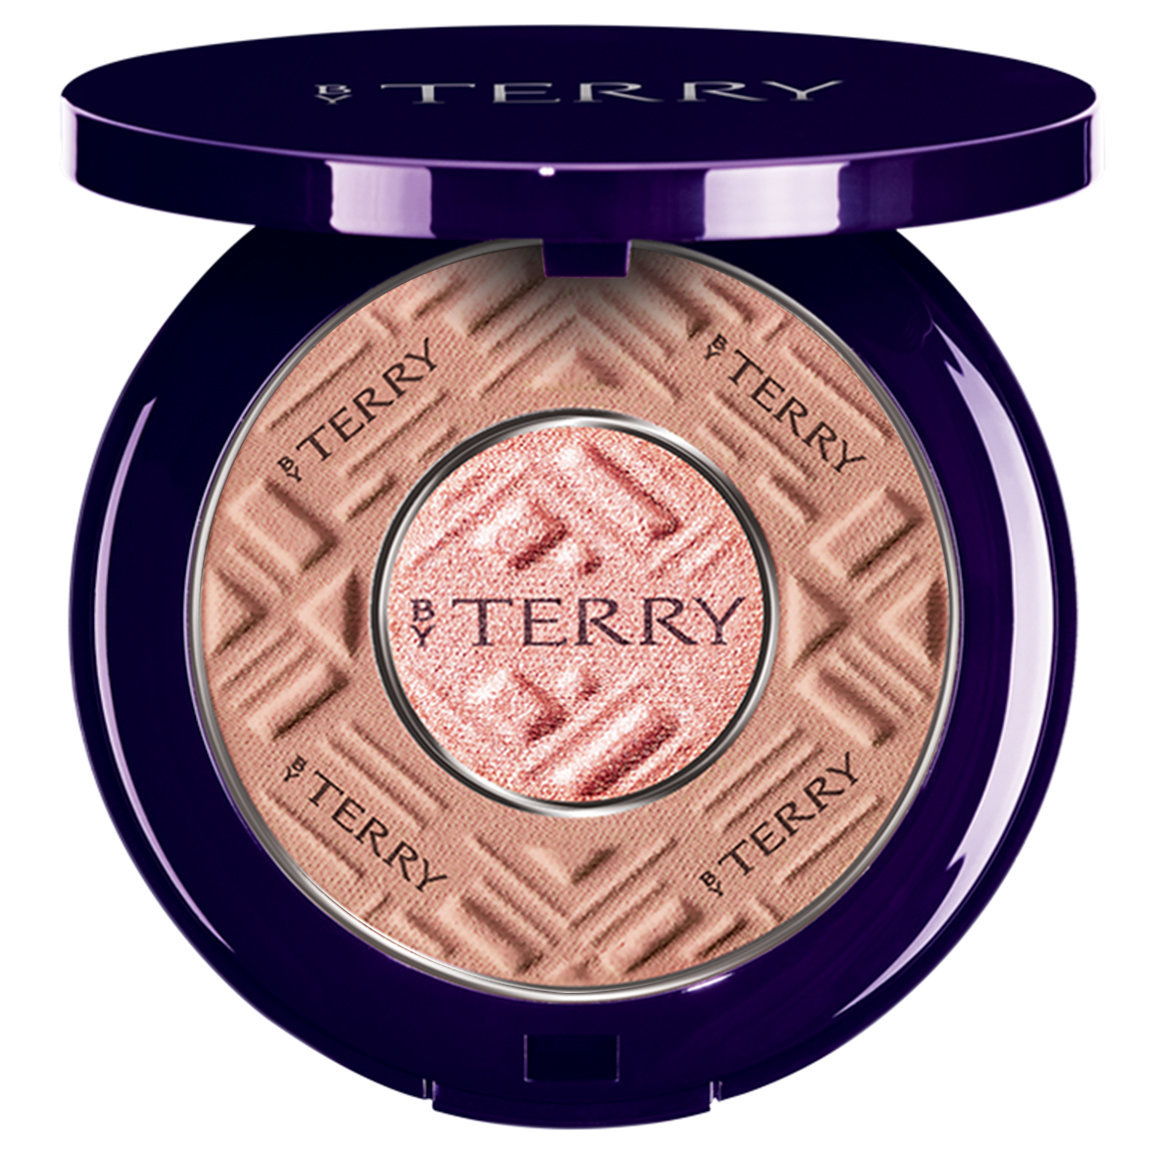 BY TERRY Compact-Expert Dual Powder 2 Rosy Gleam alternative view 1 - product swatch.